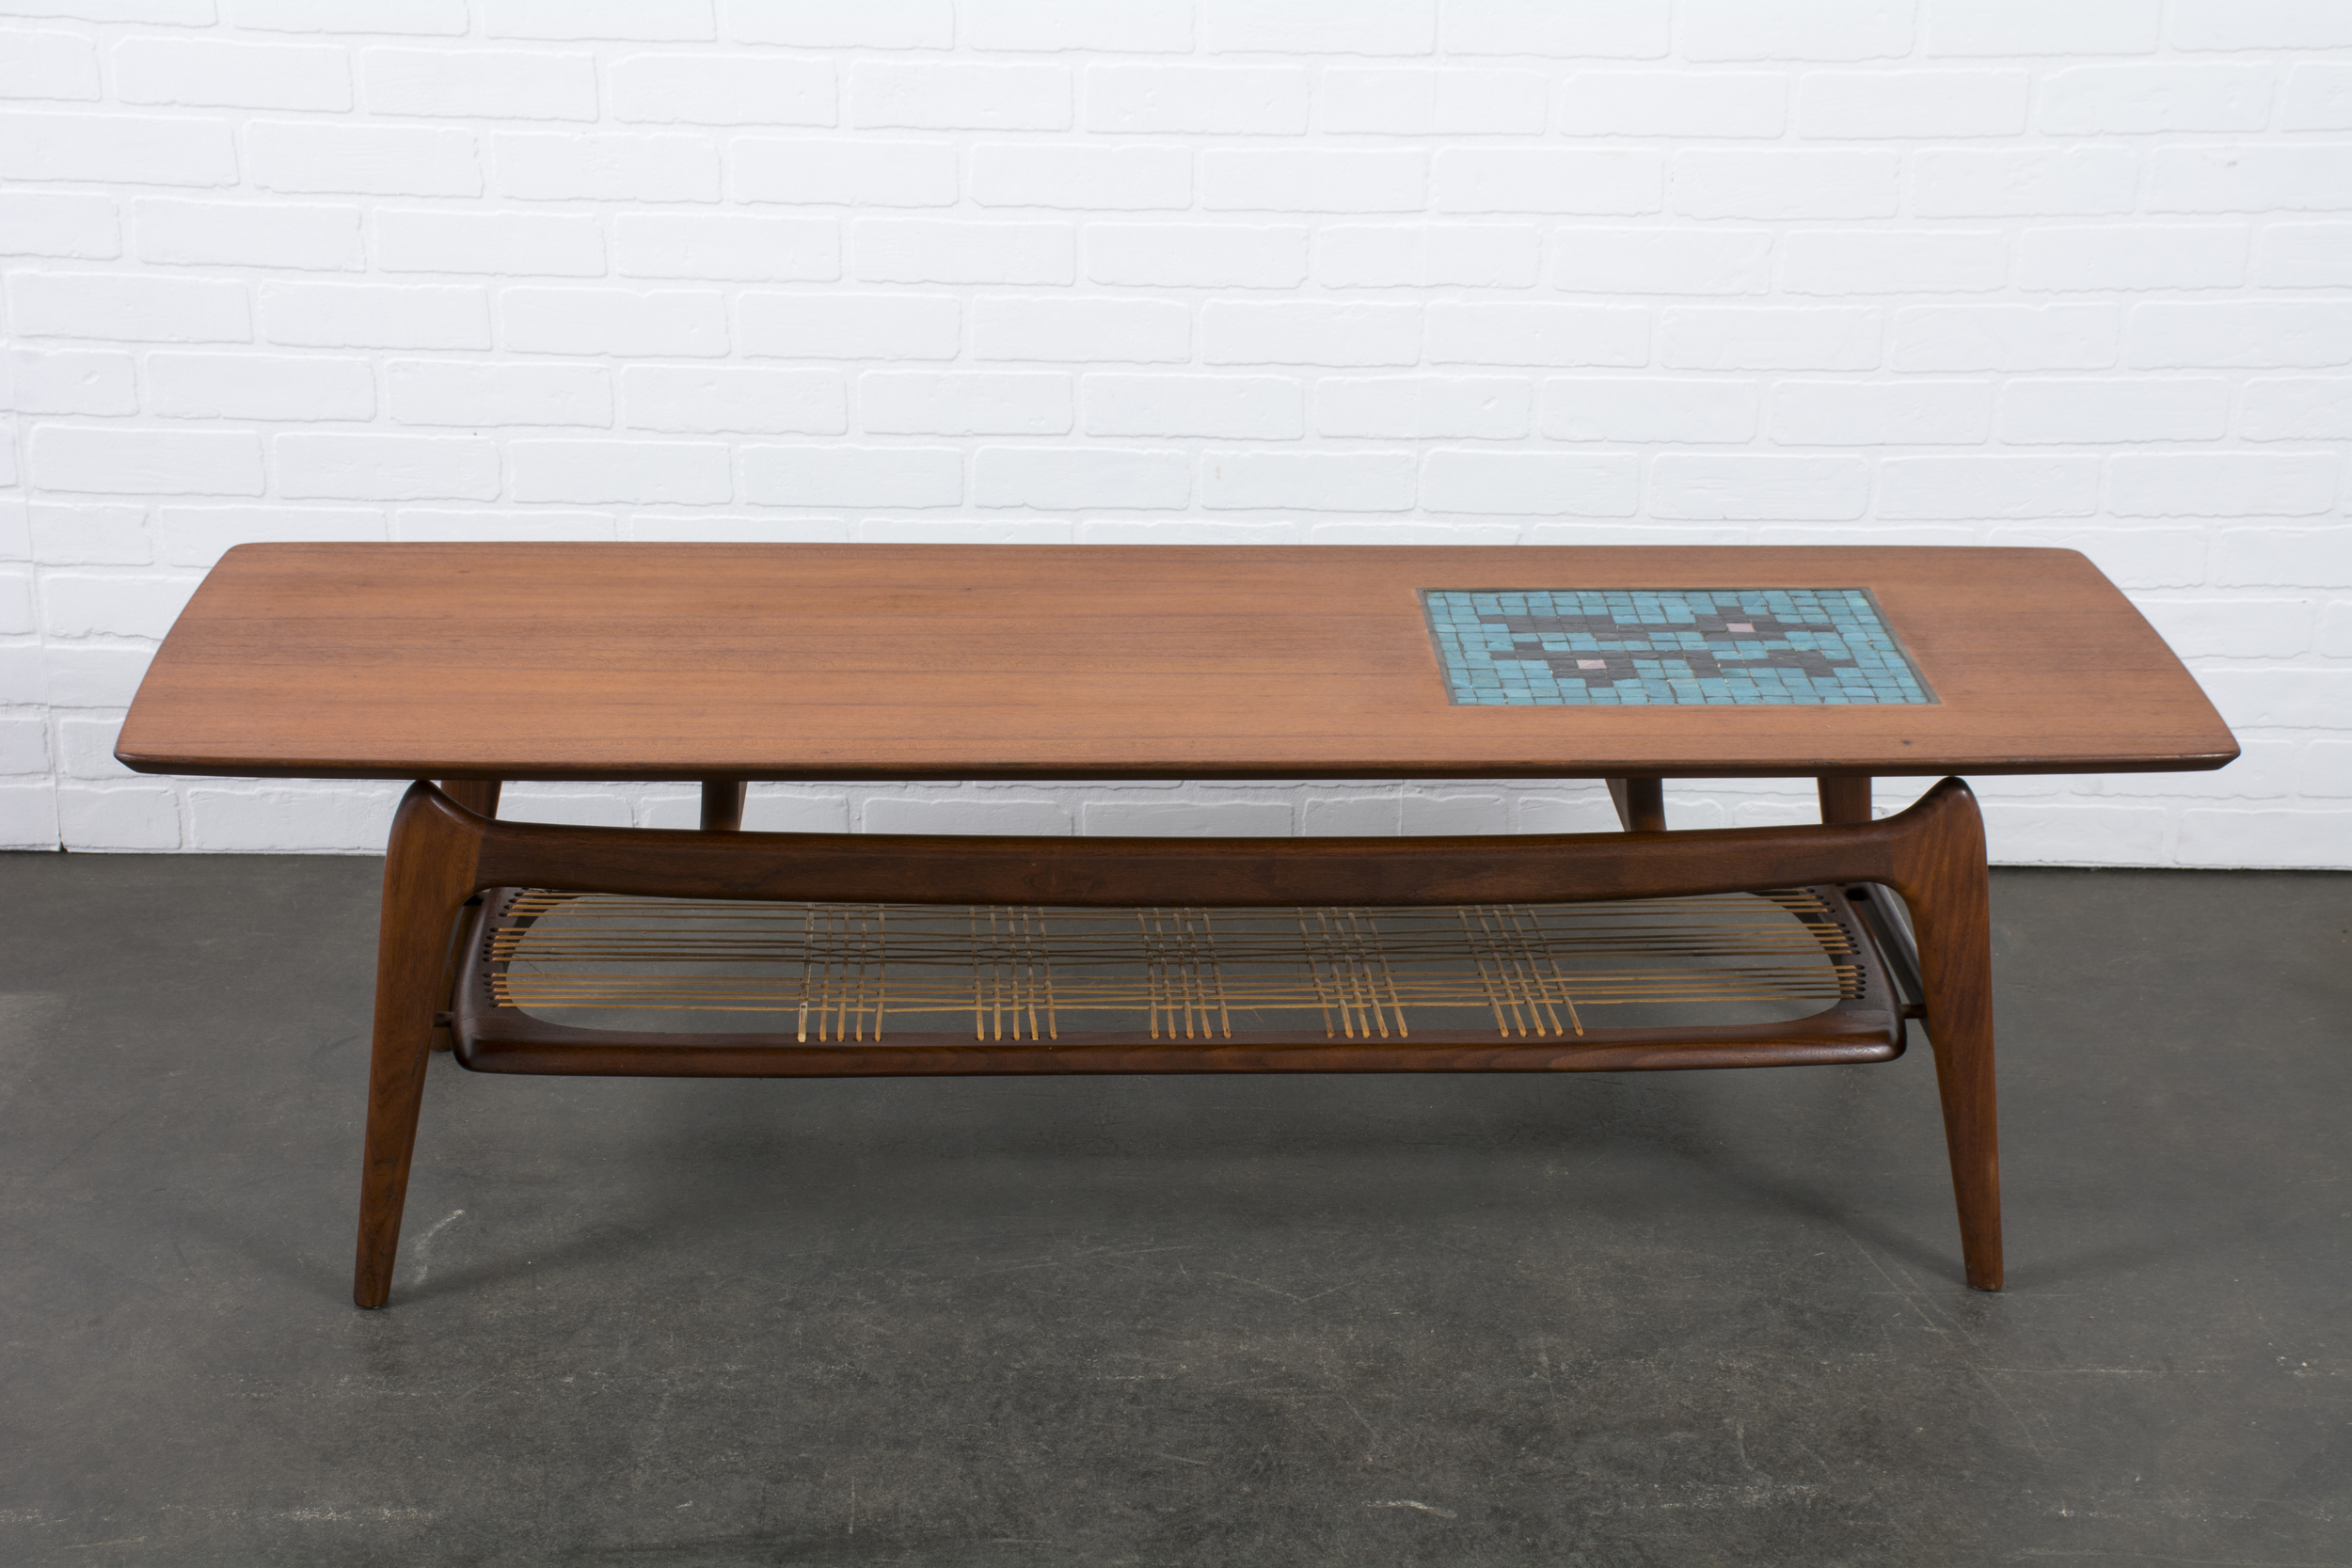 Vintage Mid-Century Coffee Table with Tile Inlay by Louis van Teeffelen